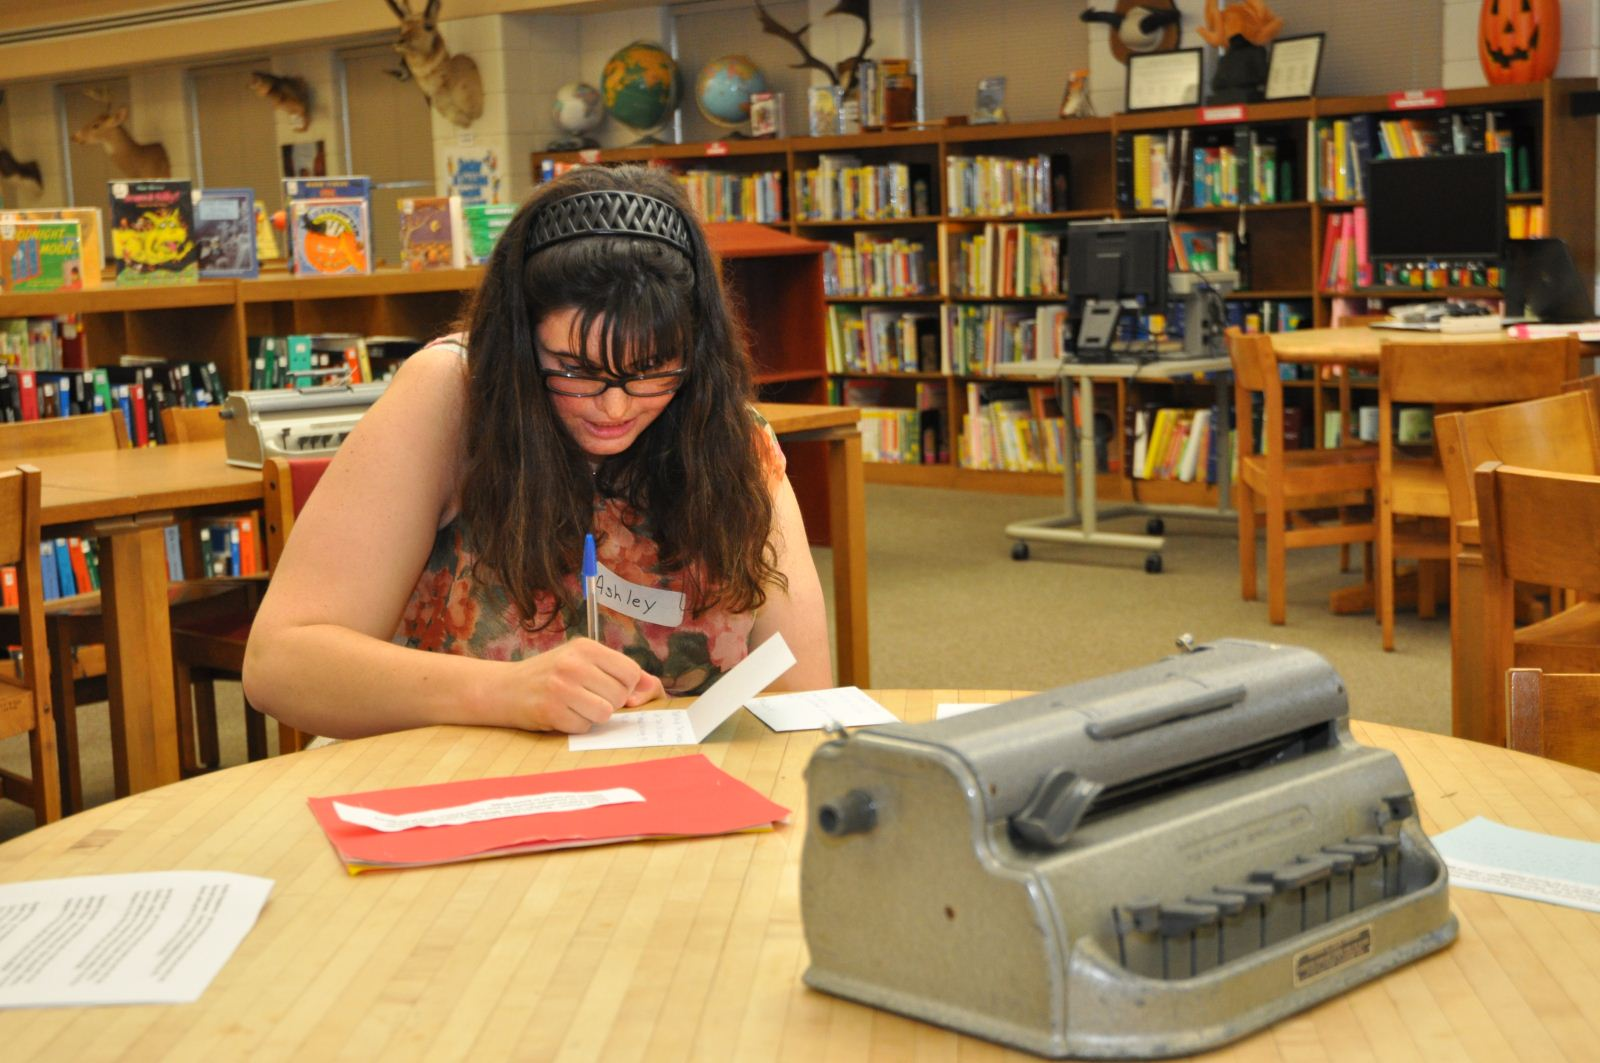 KSB high school student is reading a card in the school library.  She is seated at a table.  There is a braillewriter on the table.